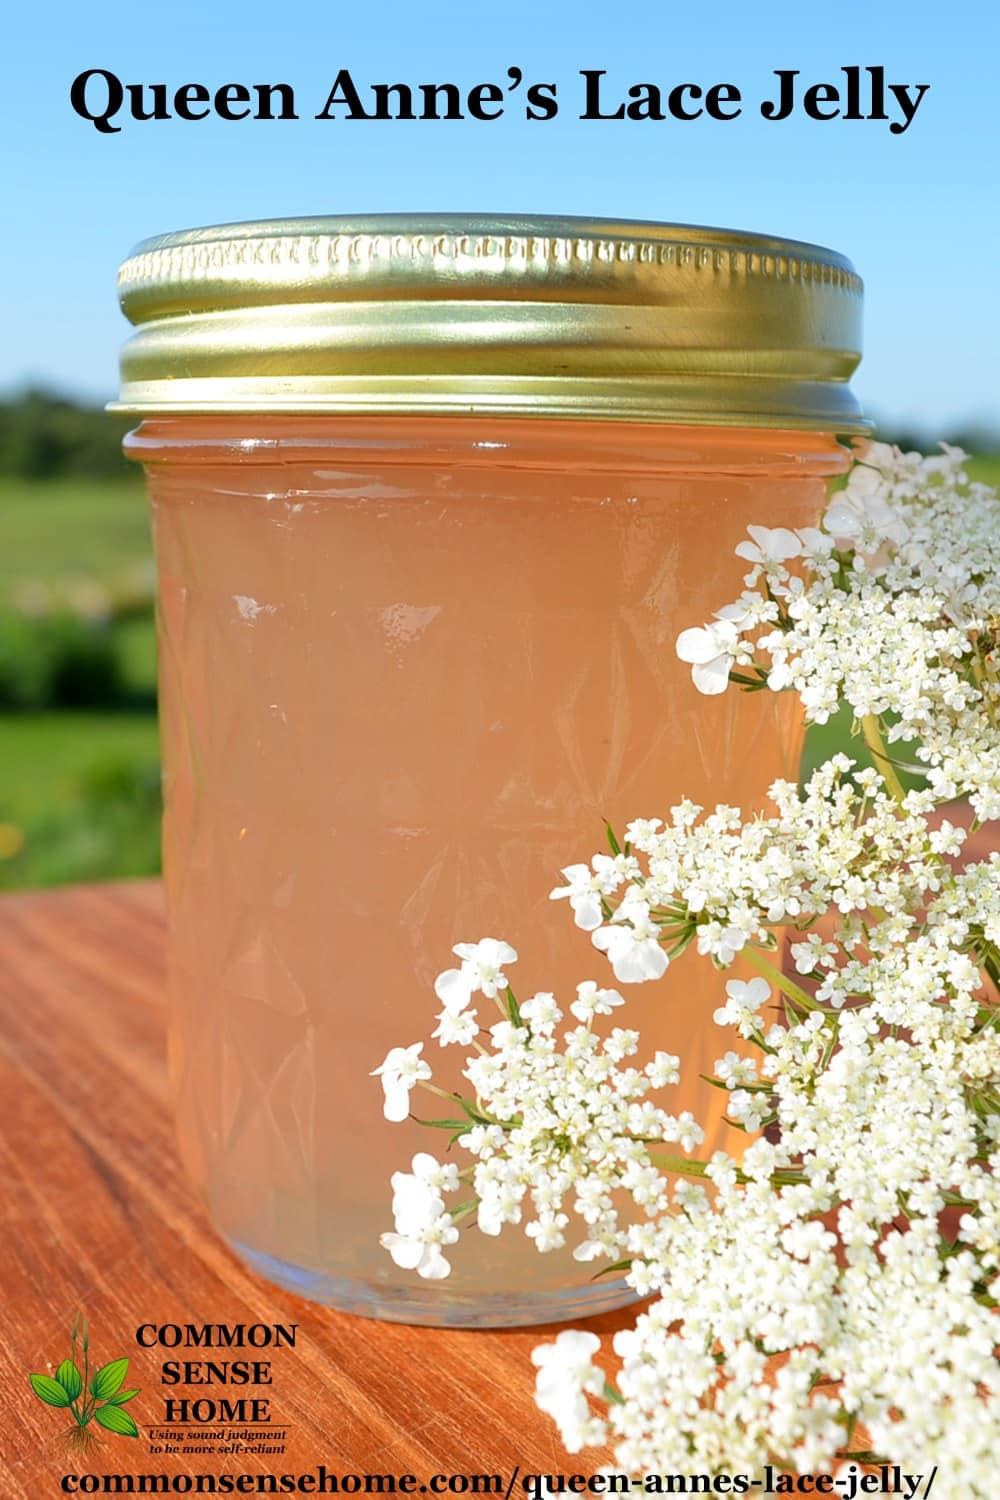 queen anne's lace jelly with blossoms